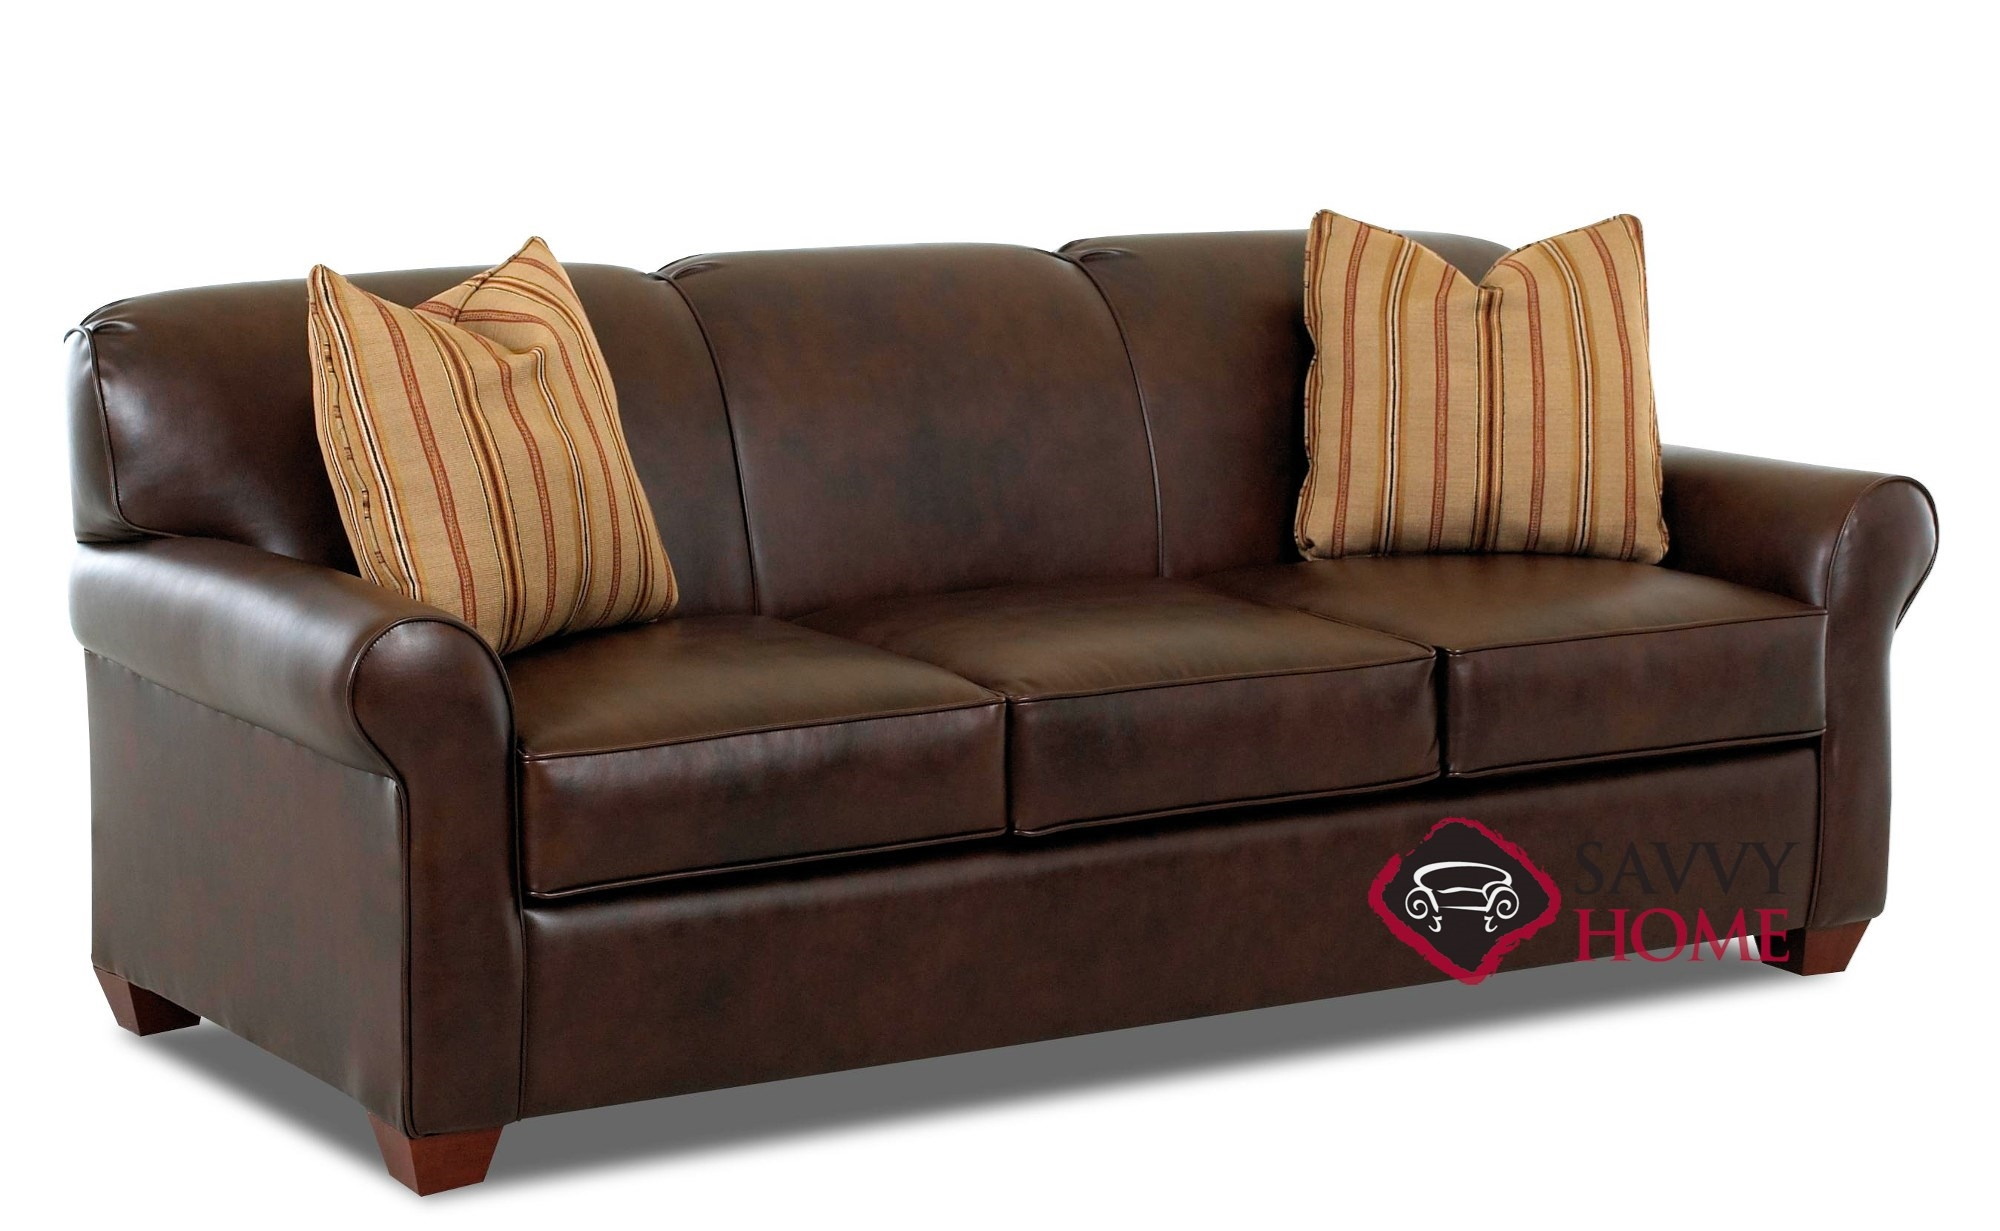 Affordable Furniture Calgary Calgary Leather Stationary Sofa By Savvy Is Fully